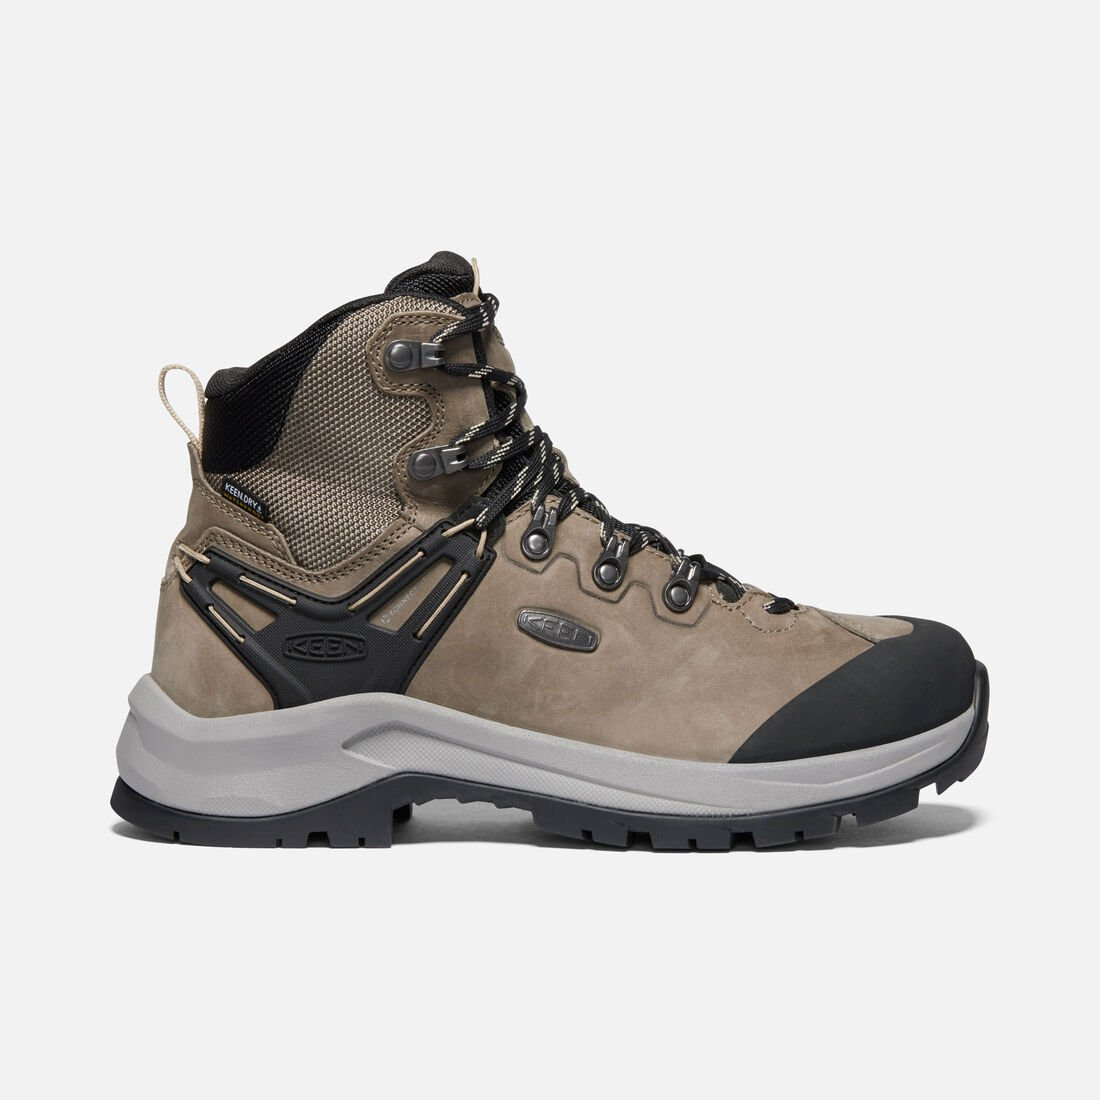 Keen Wild Sky Mid Waterproof Boot Brindle Black (Women's) - Find Your Feet Australia Hobart Launceston Tasmania